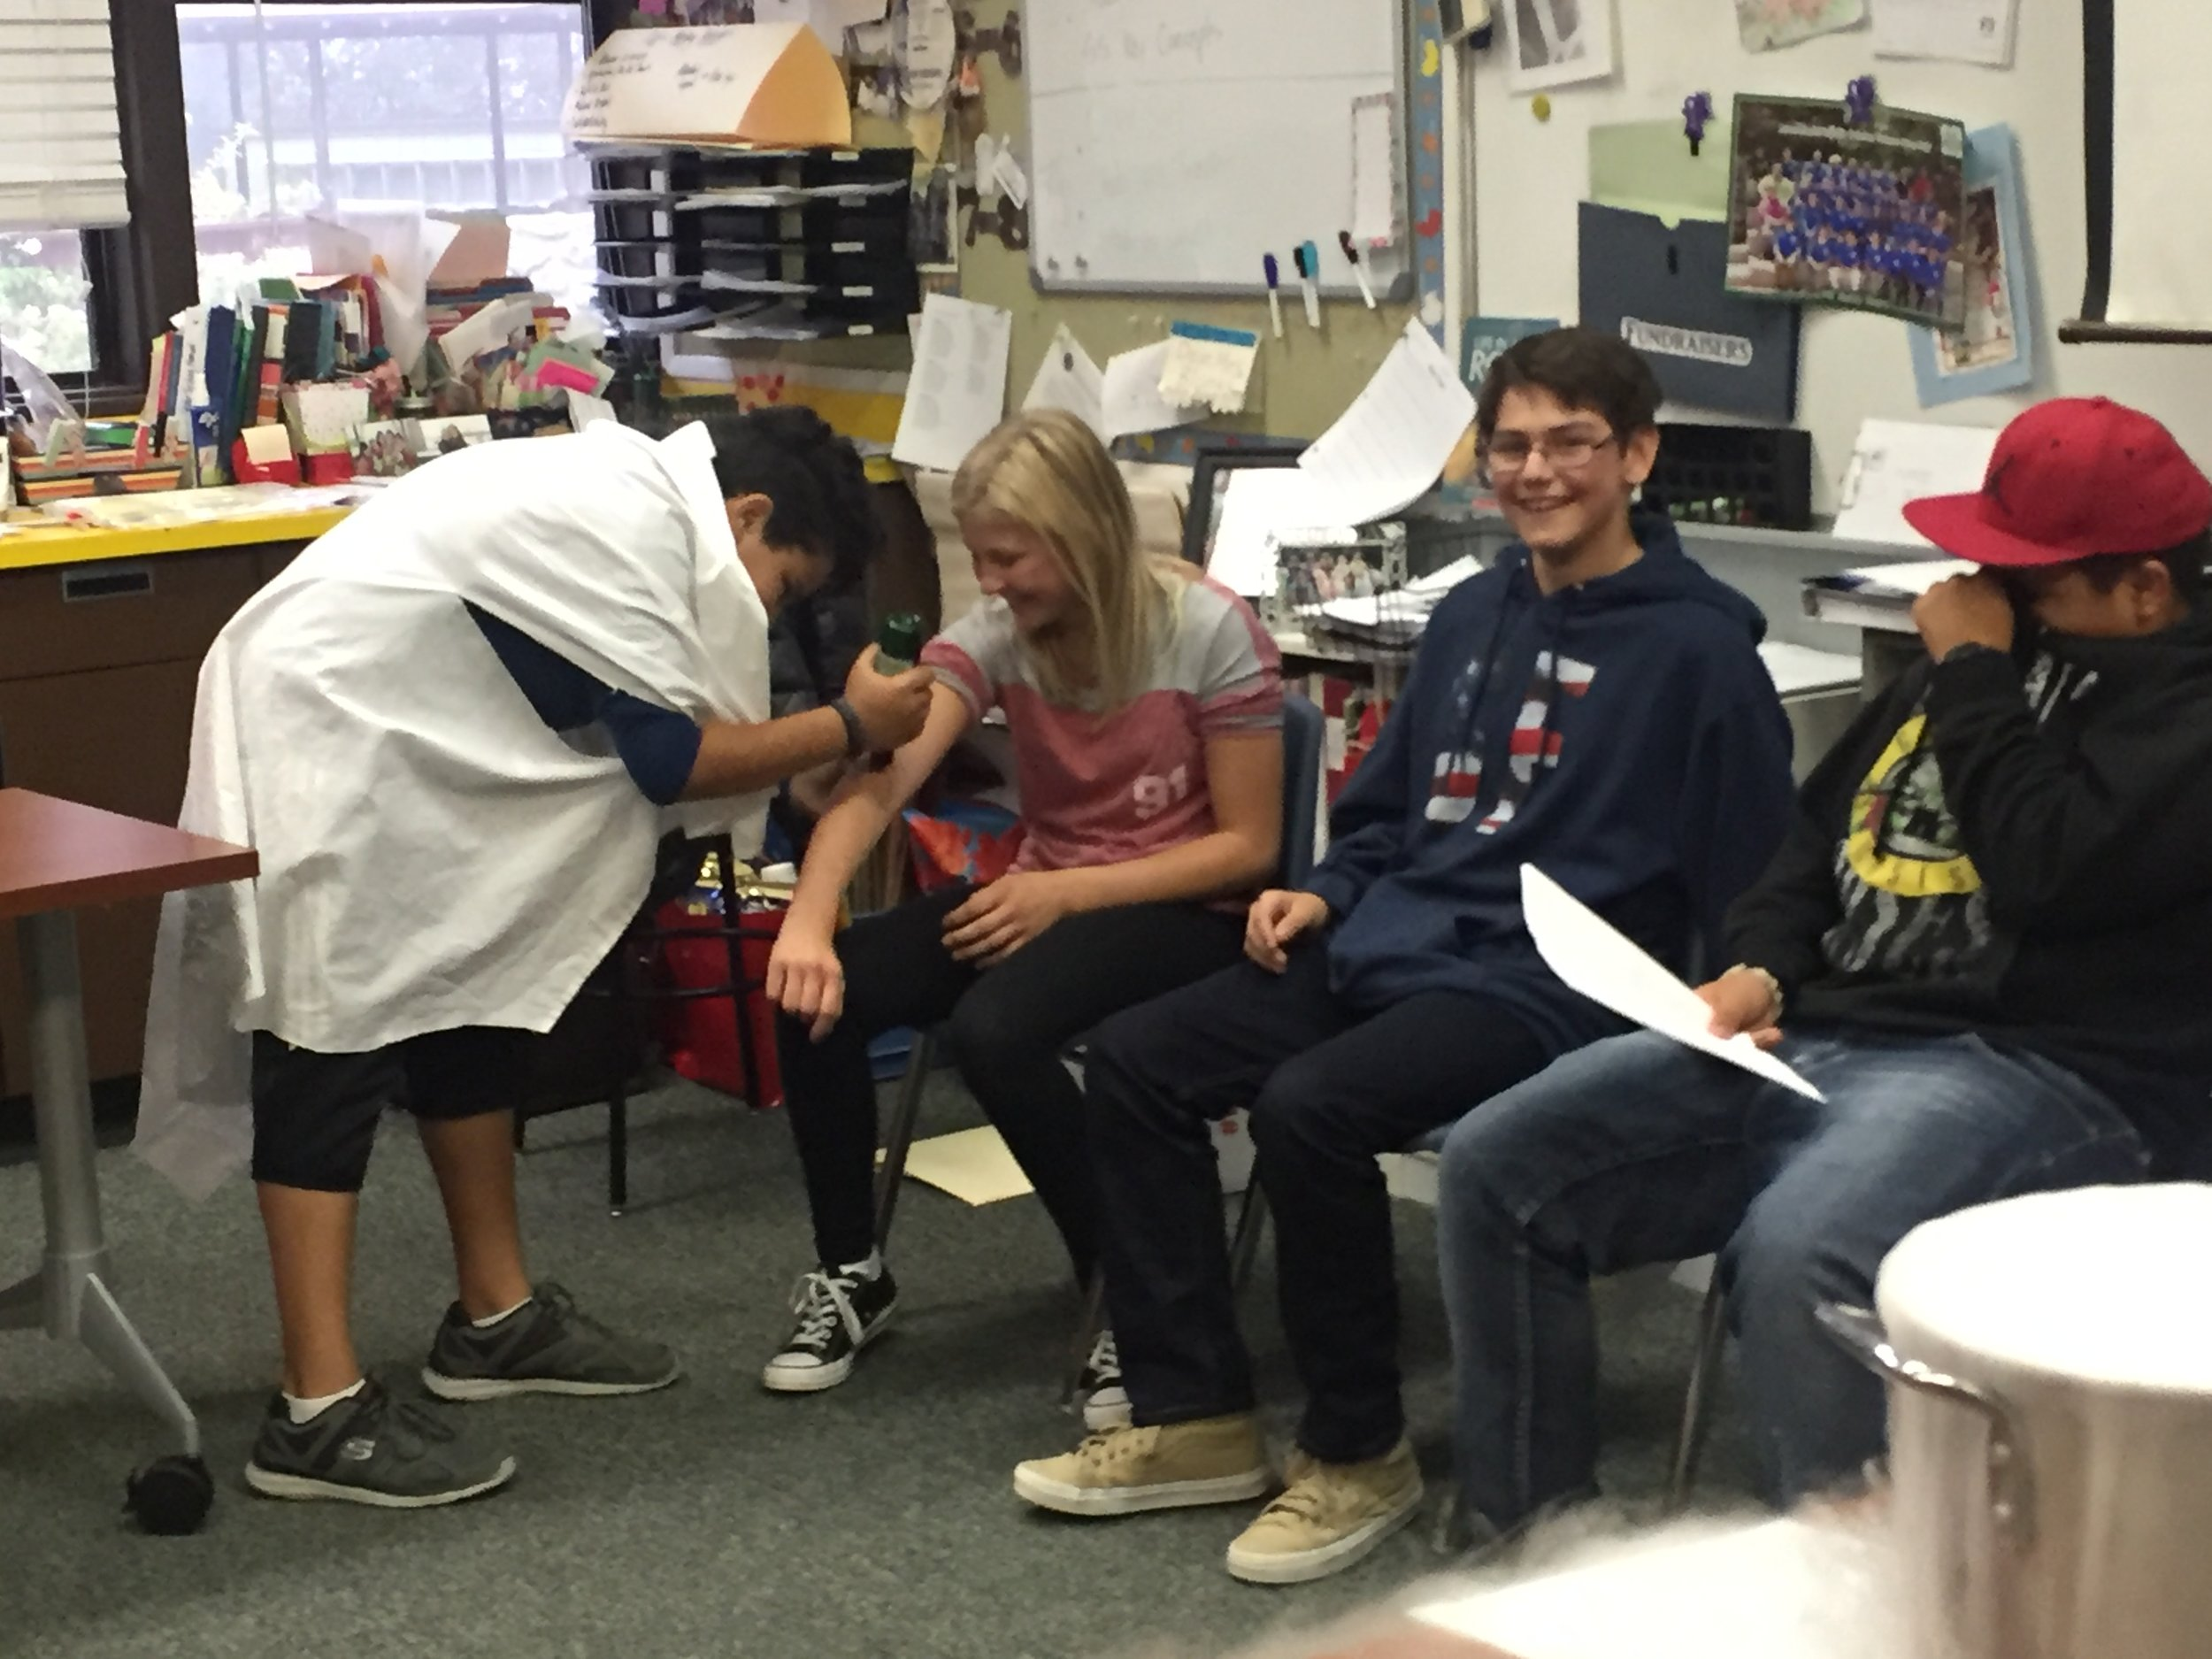 Our 7/8 students teaching their colleagues about Medieval medical practices...thank goodness for modern medicine!